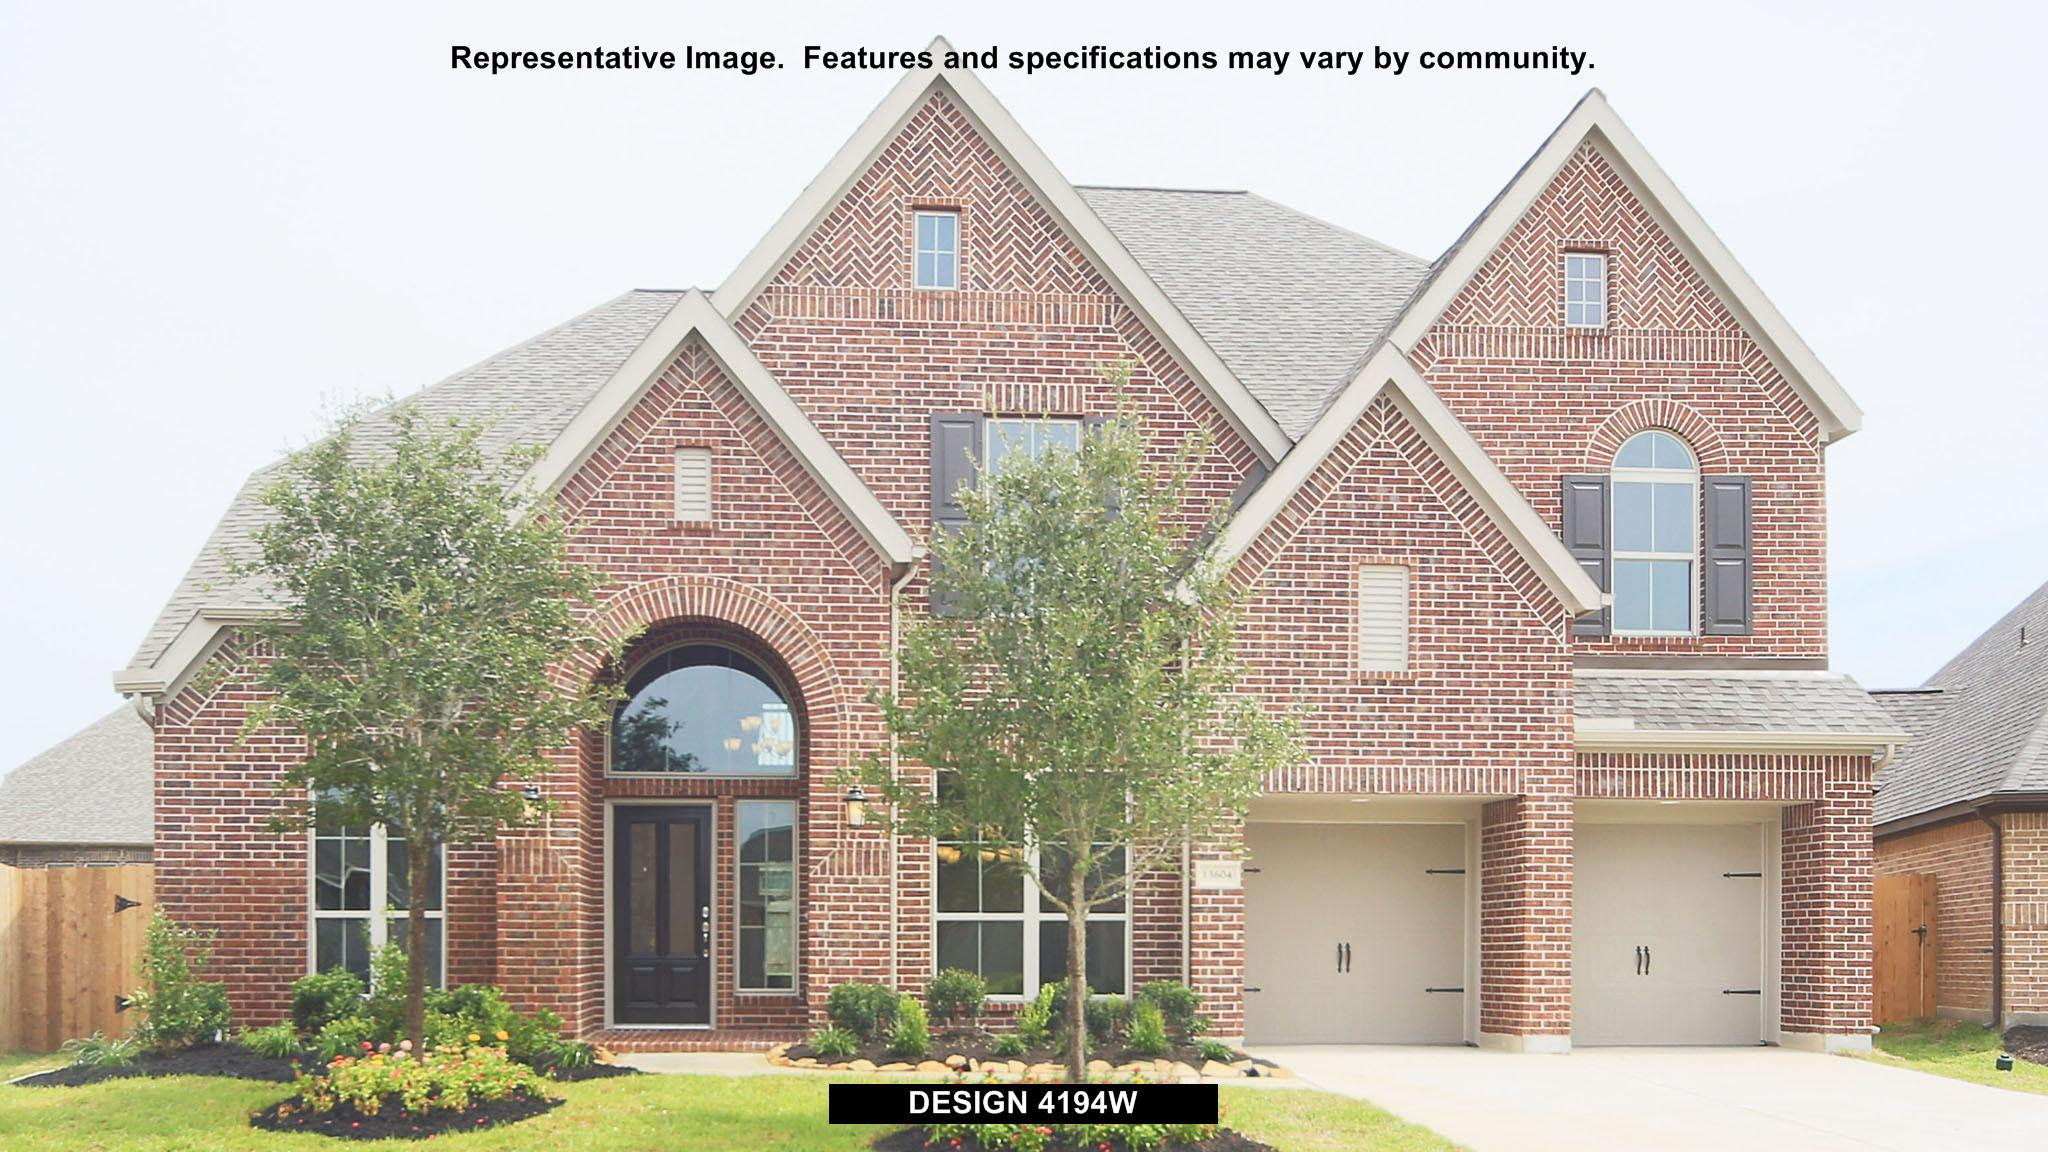 Single Family for Sale at Southlake 60' - 4194w 3407 Golden Cypress Lane Pearland, Texas 77584 United States